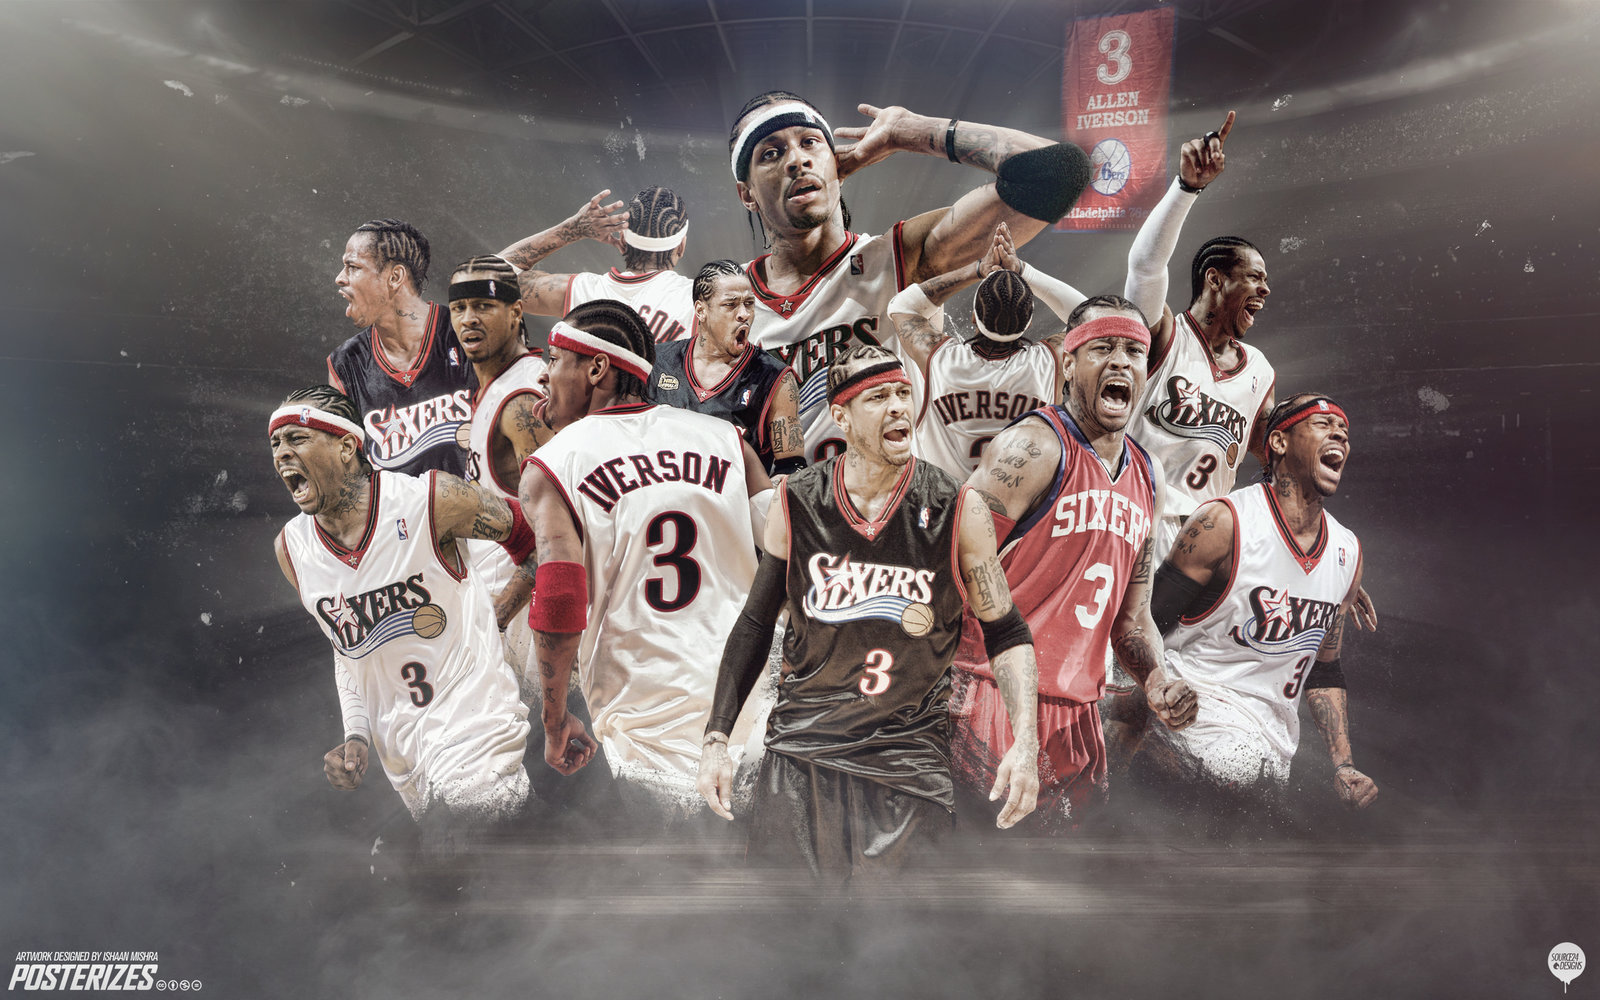 essay on allen iverson Allen iverson has continued to plague us with the same thought during this 2002-03 philadelphia 76ers season, why isn't he under consideration to be an olympian iverson, seemingly a man on a mission, continues to show us why he should receive an invitation to participate on the 2004 us.